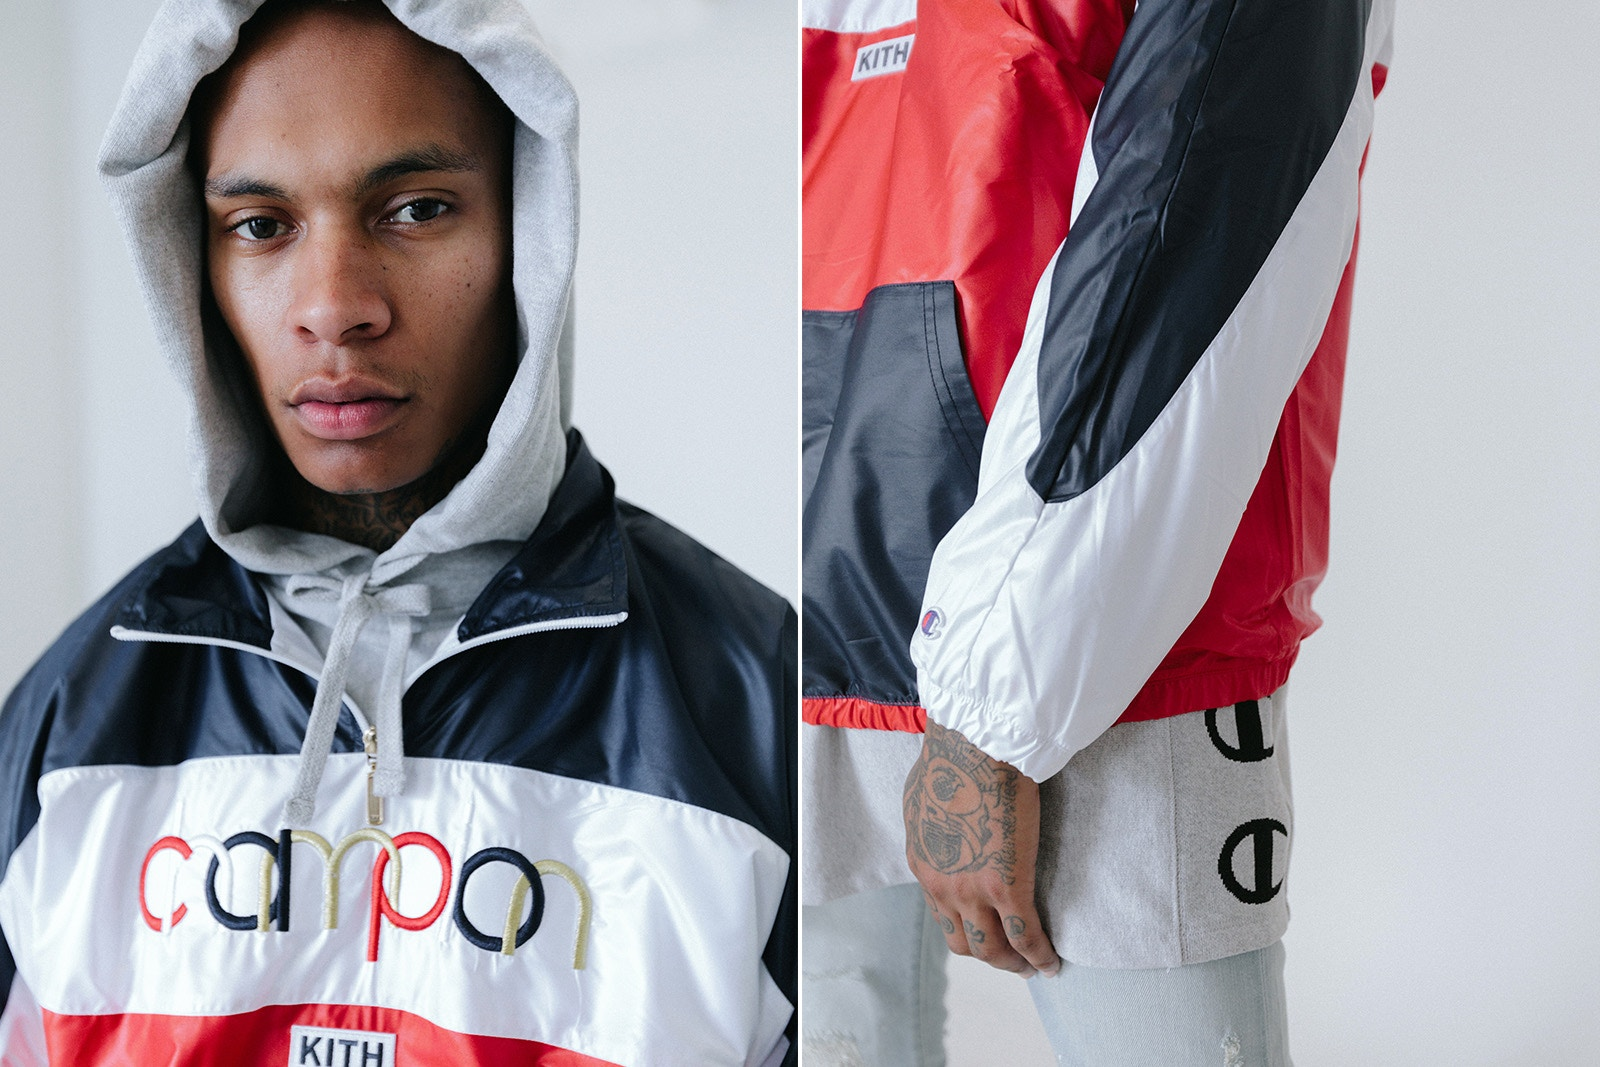 KITH rielabora il logo di Champion per una nuova capsule collection | Collater.al 8